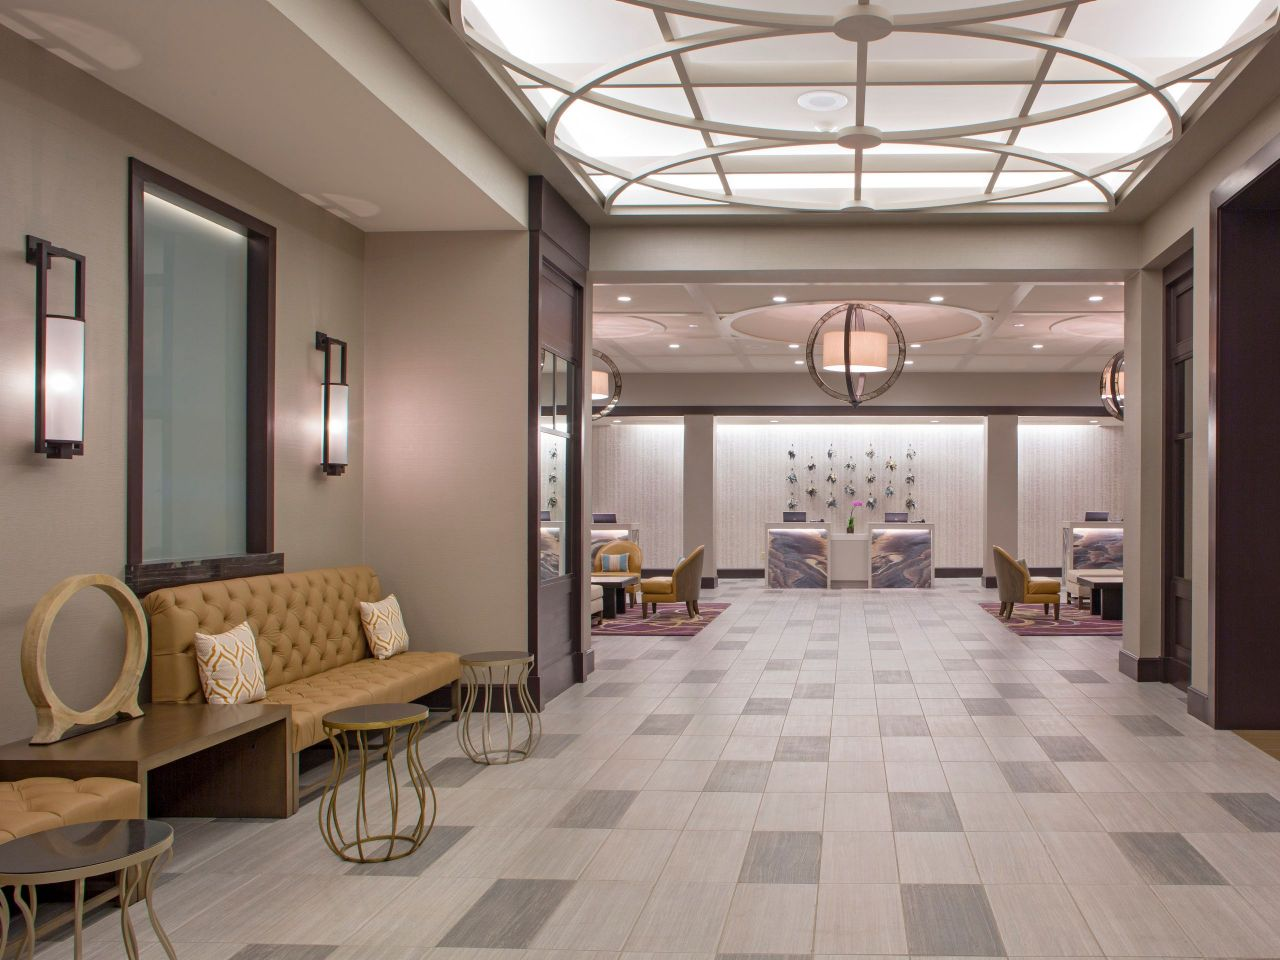 The Eliza Jane Lobby